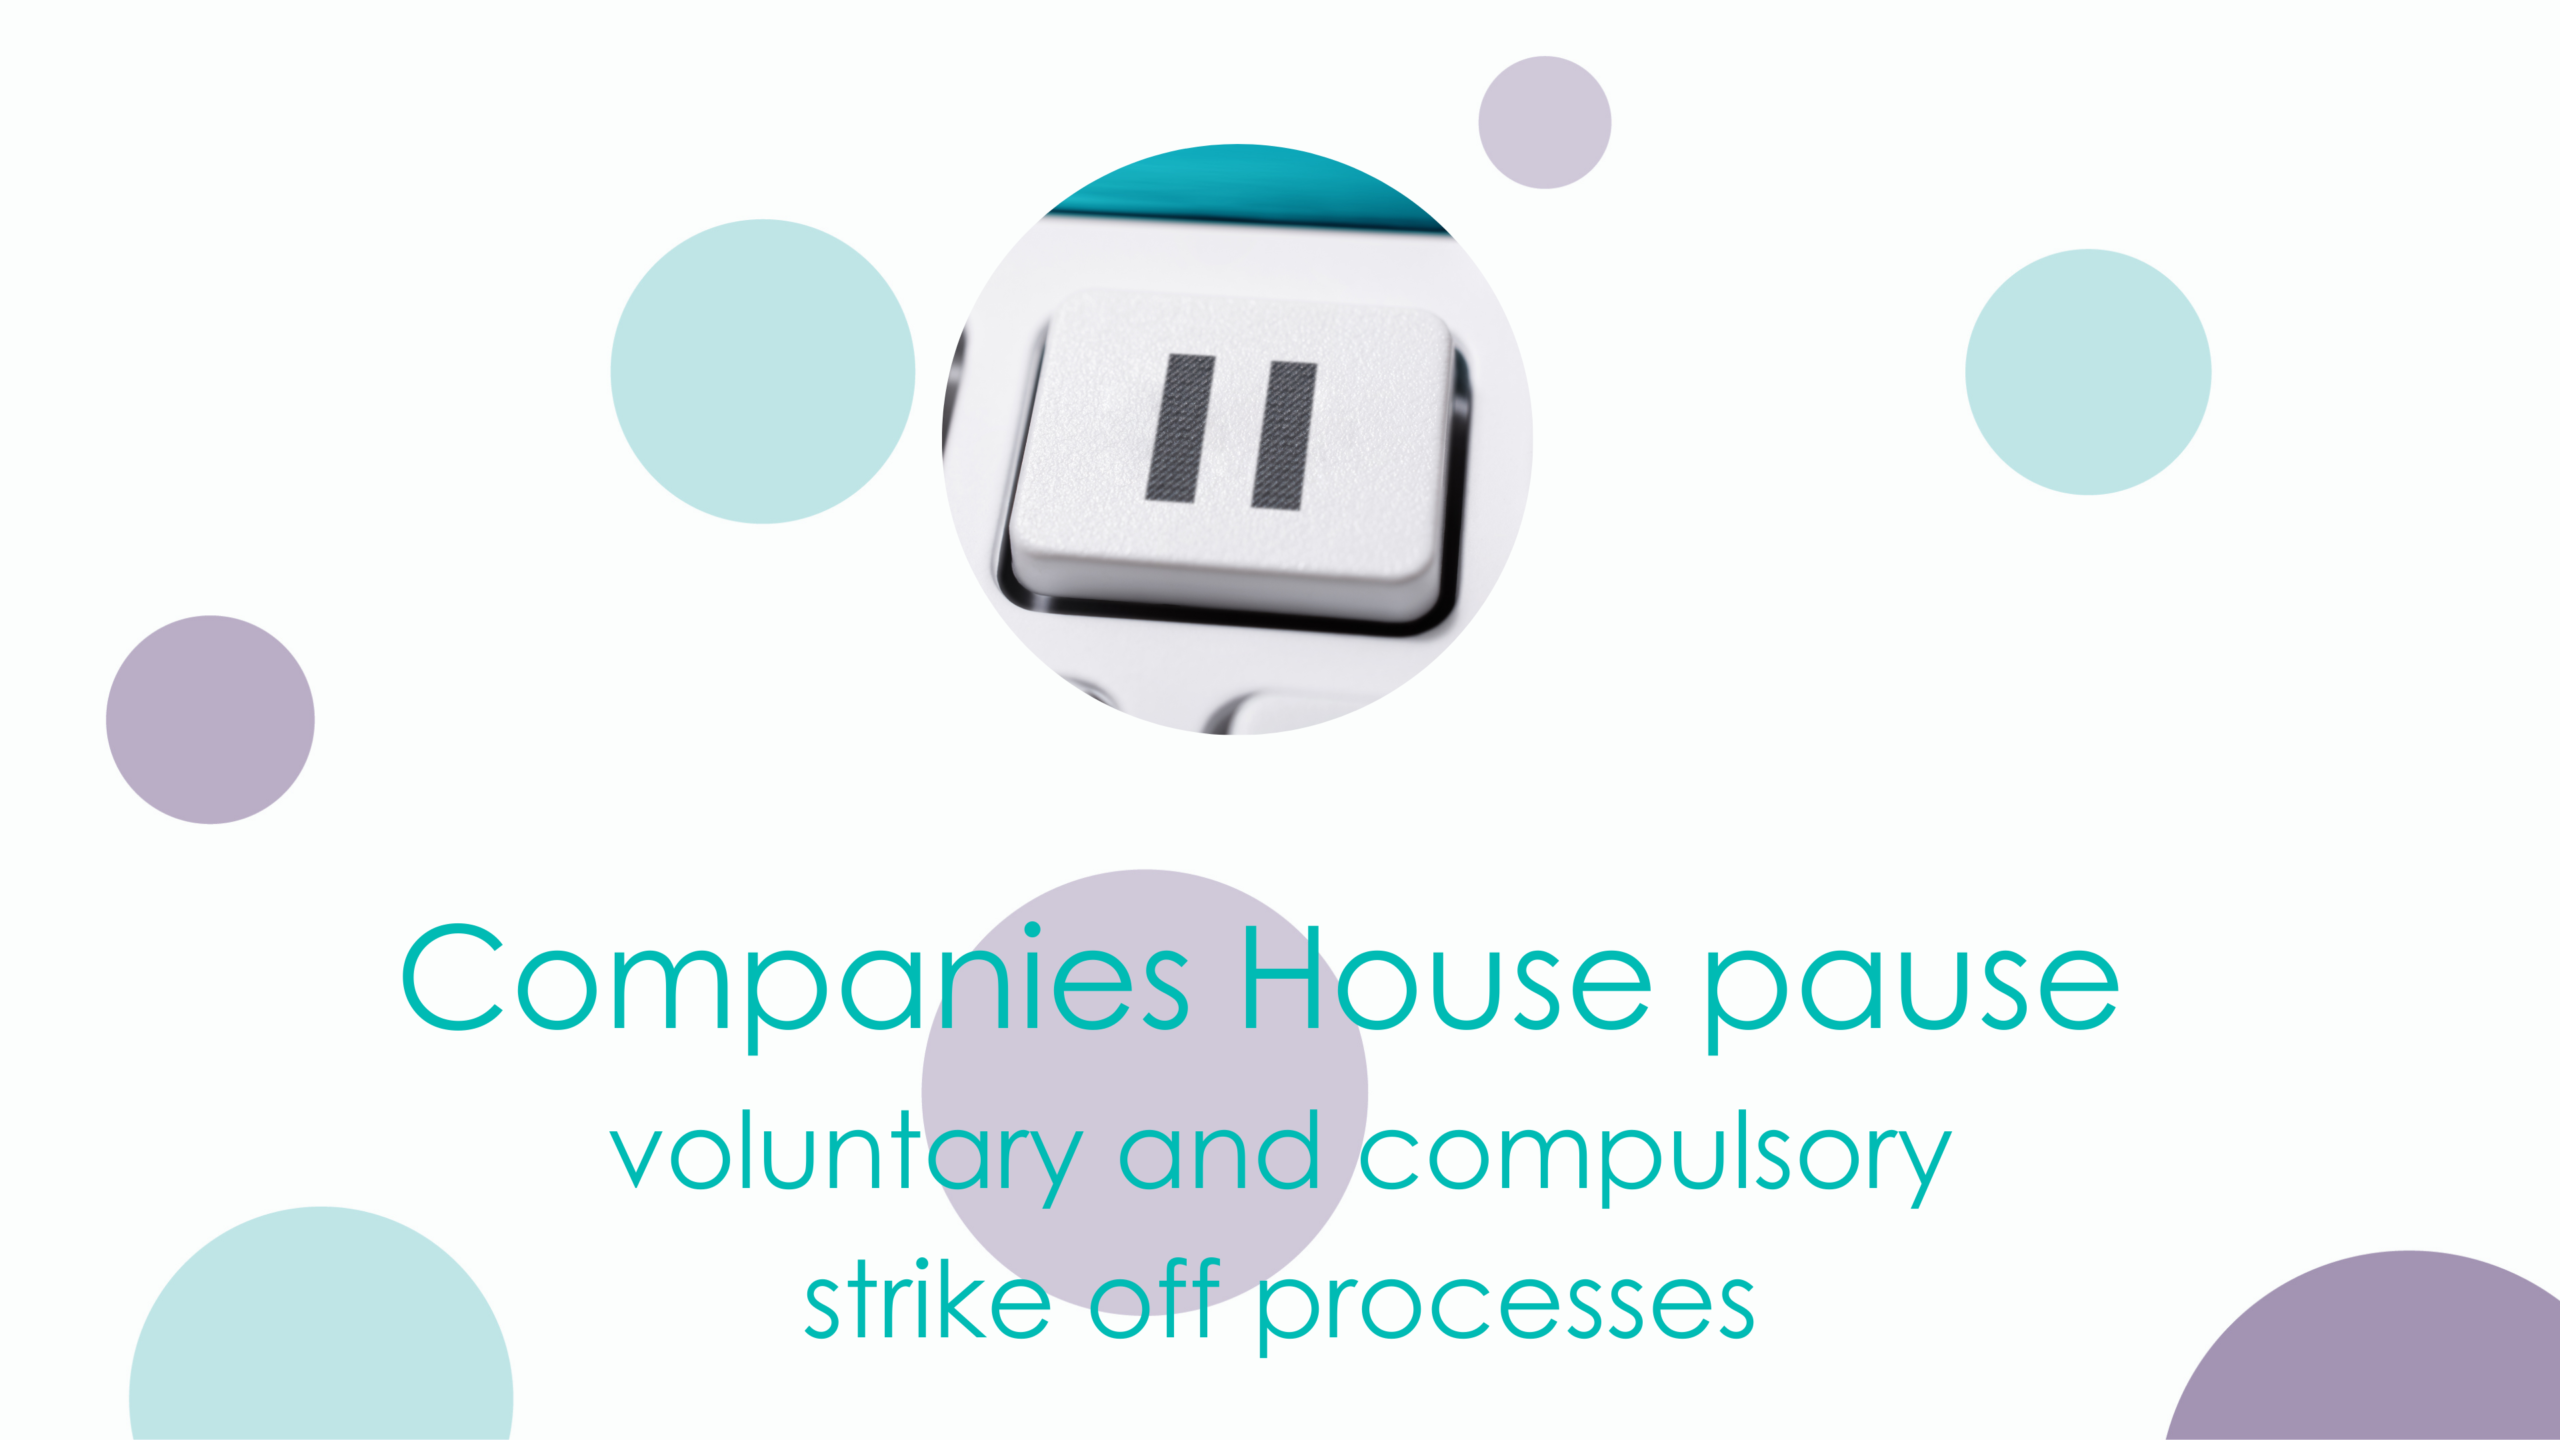 Companies House pauses voluntary and compulsory strike off processes for one month.